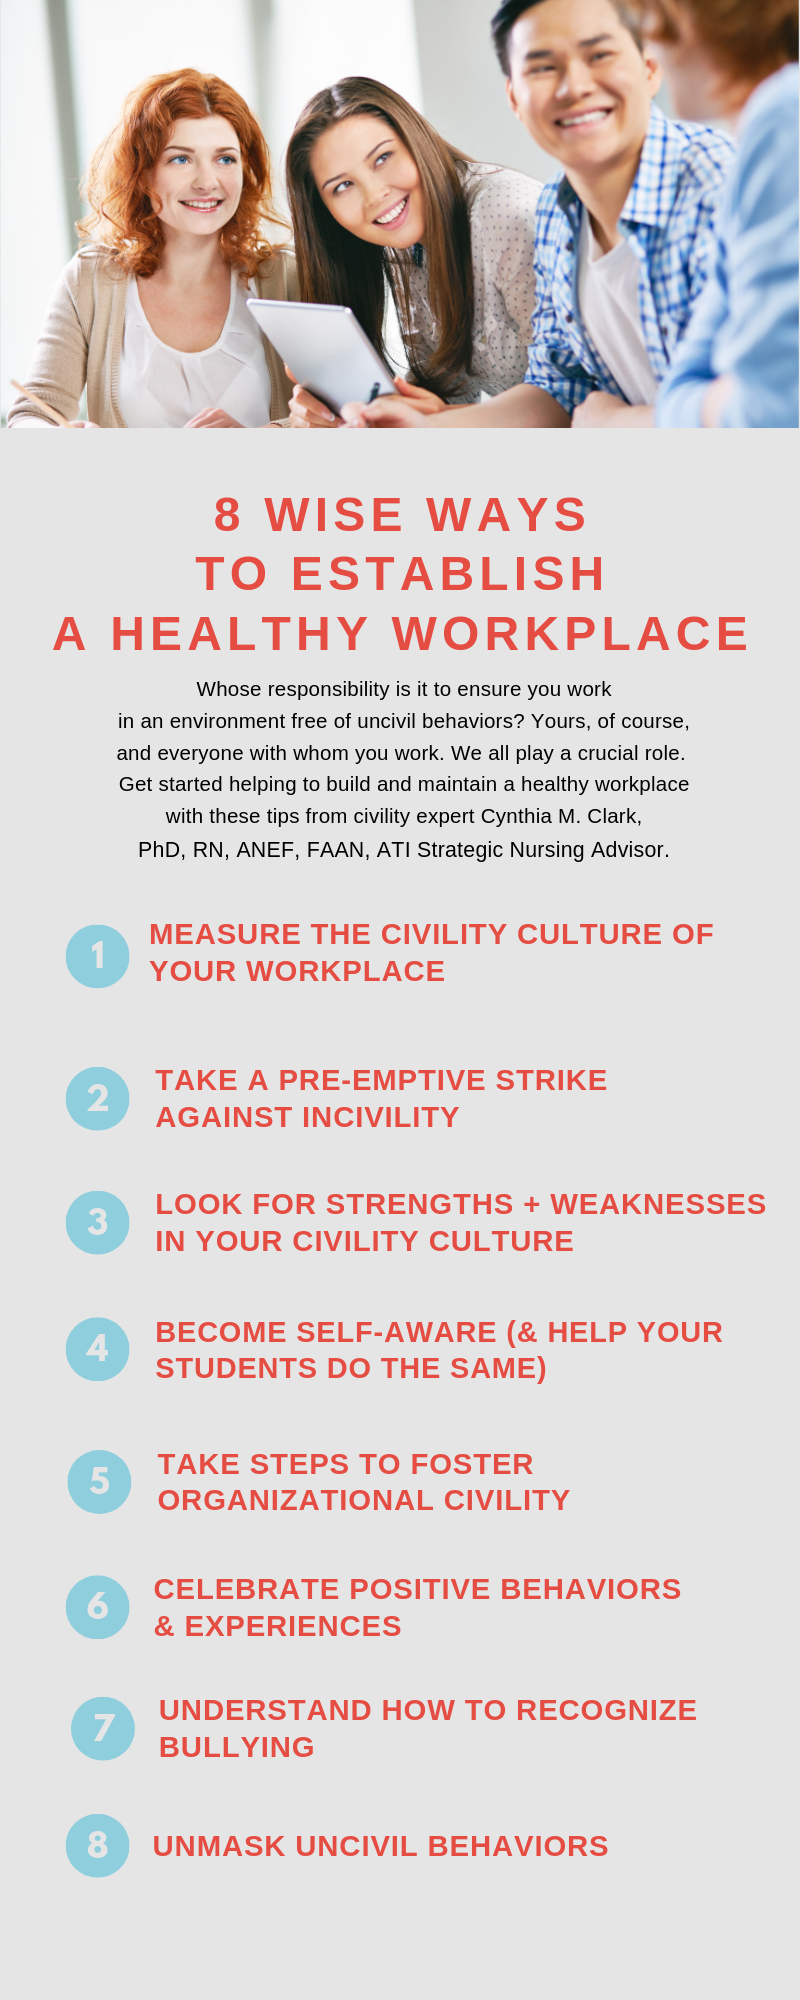 8 Wise Ways to Establish a Healthy Workplace